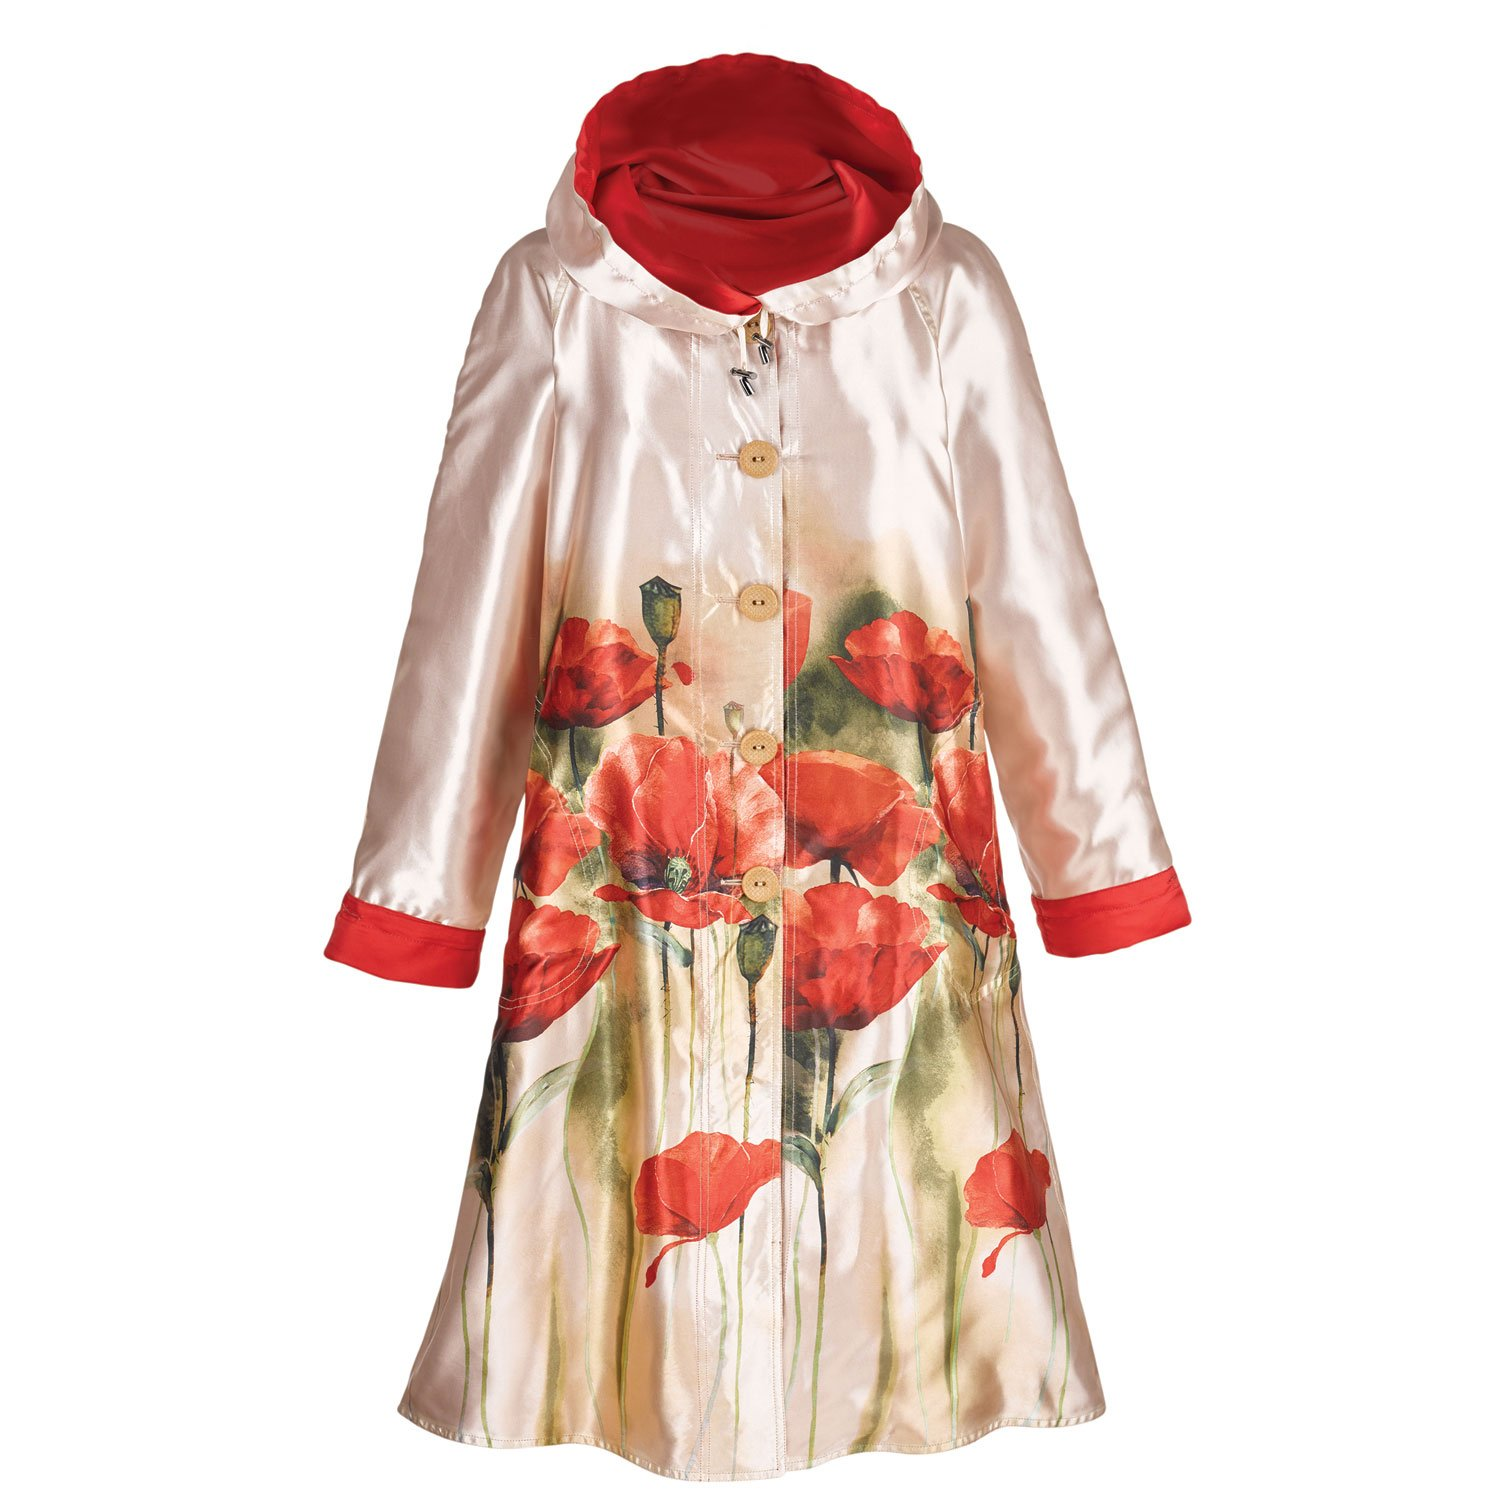 Women's Reversible Poppies Raincoat - Button Front Jacket With Hood - Large